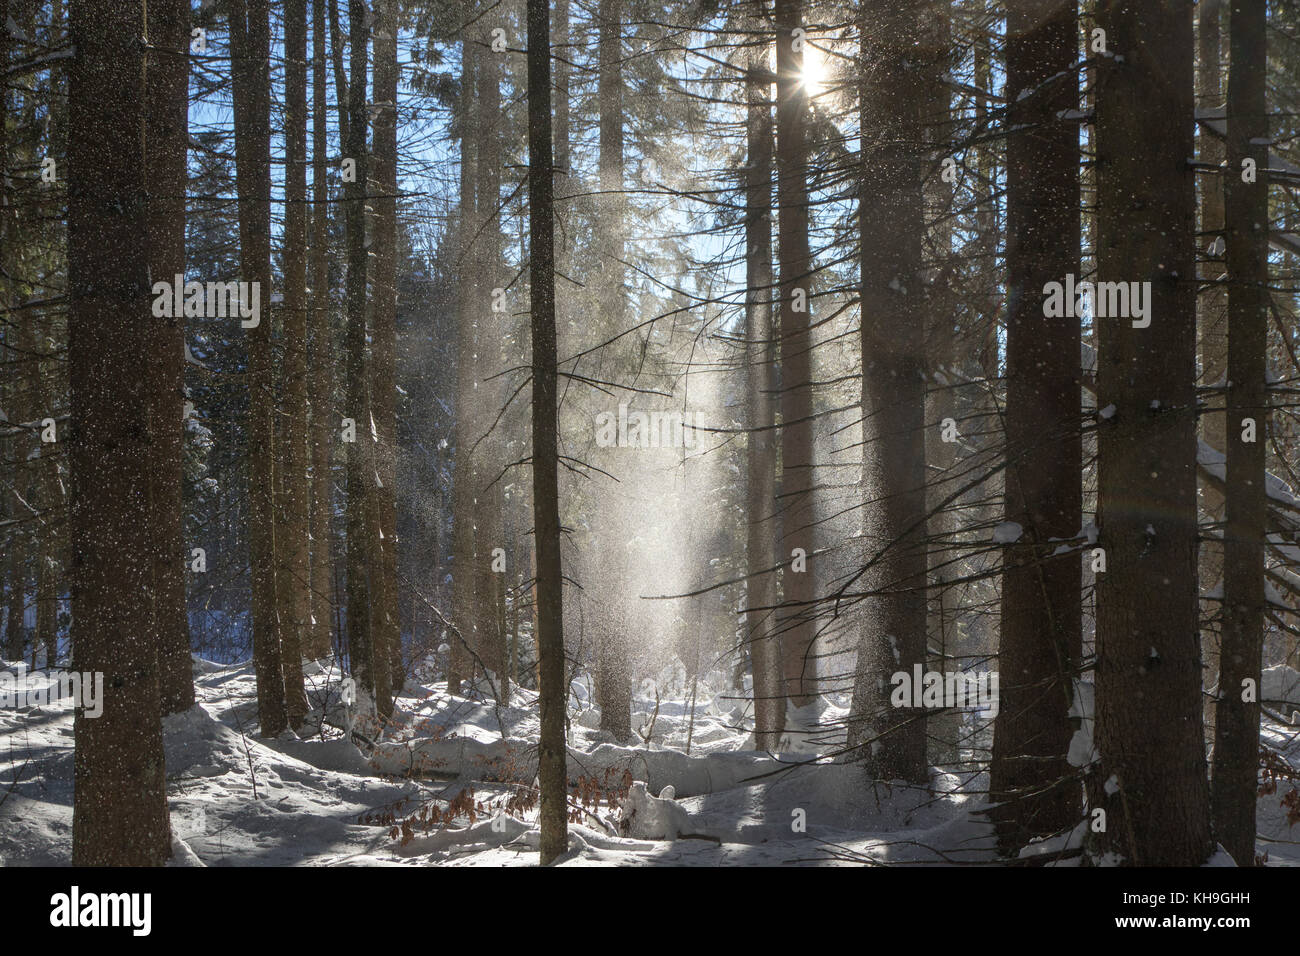 Snow falling from branches of spruce trees in coniferous forest blown away by gust of wind in winter - Stock Image